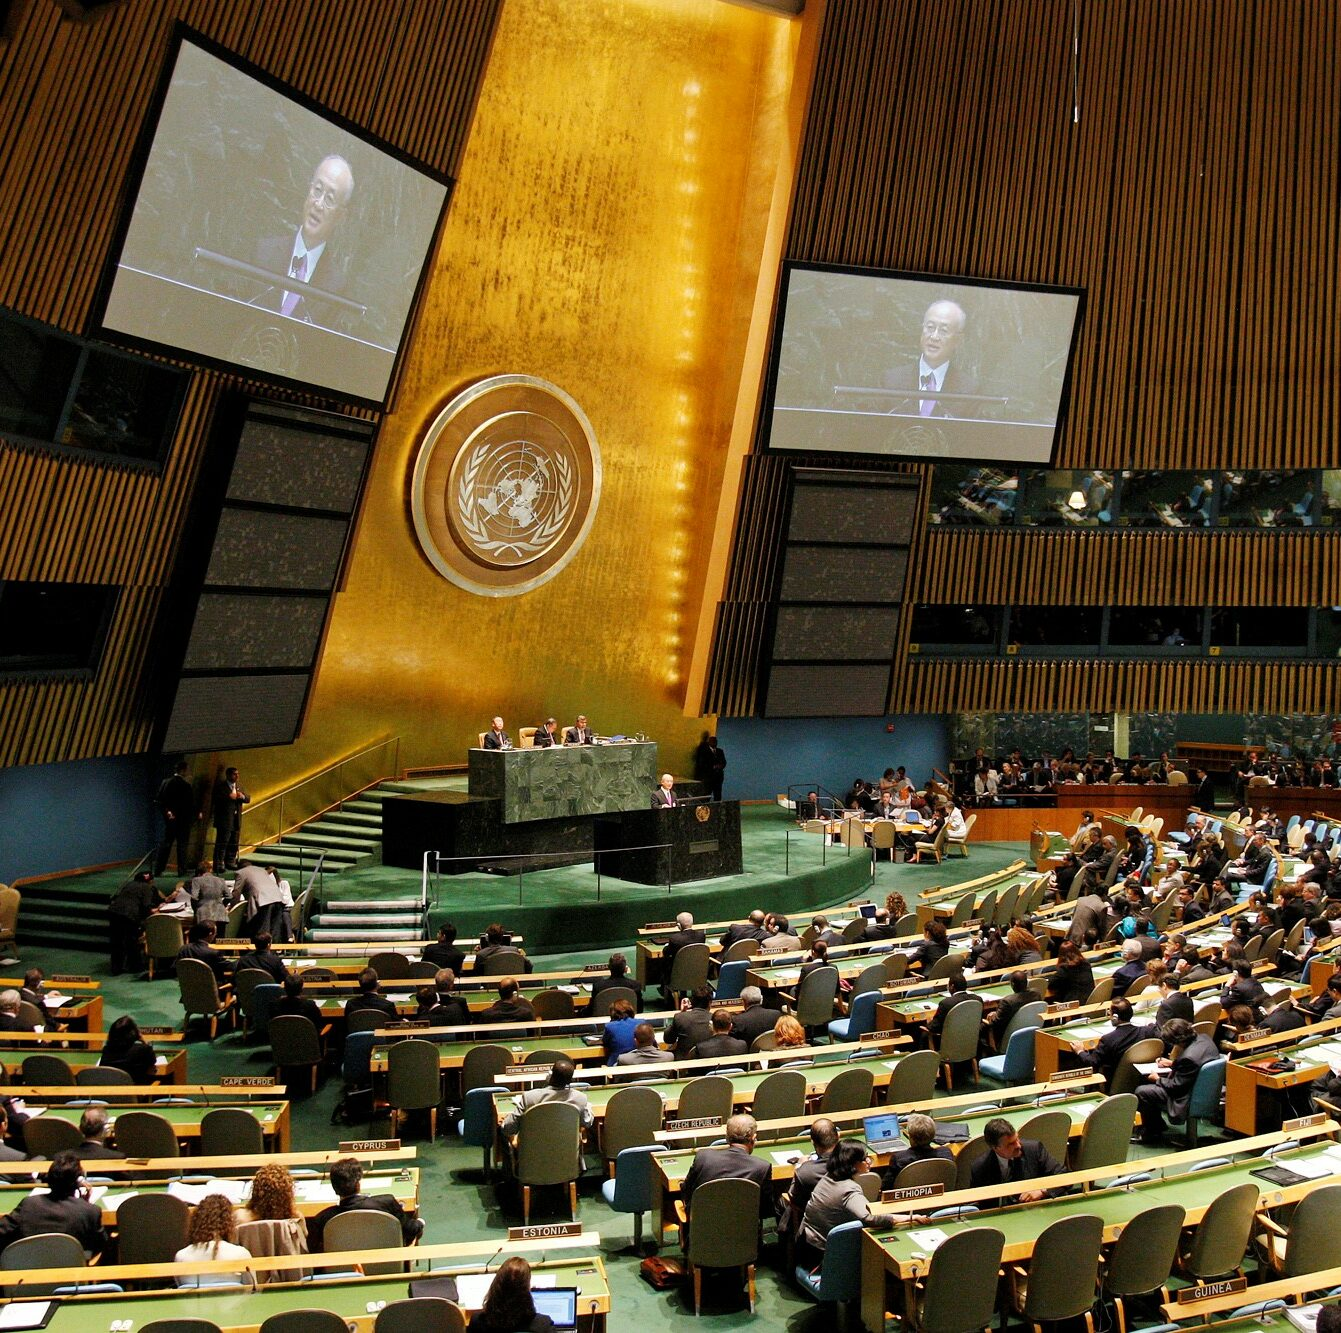 The Review Conference for the Treaty on the Non-Proliferation of Nuclear Weapons held at United Nations Headquarters in New York City